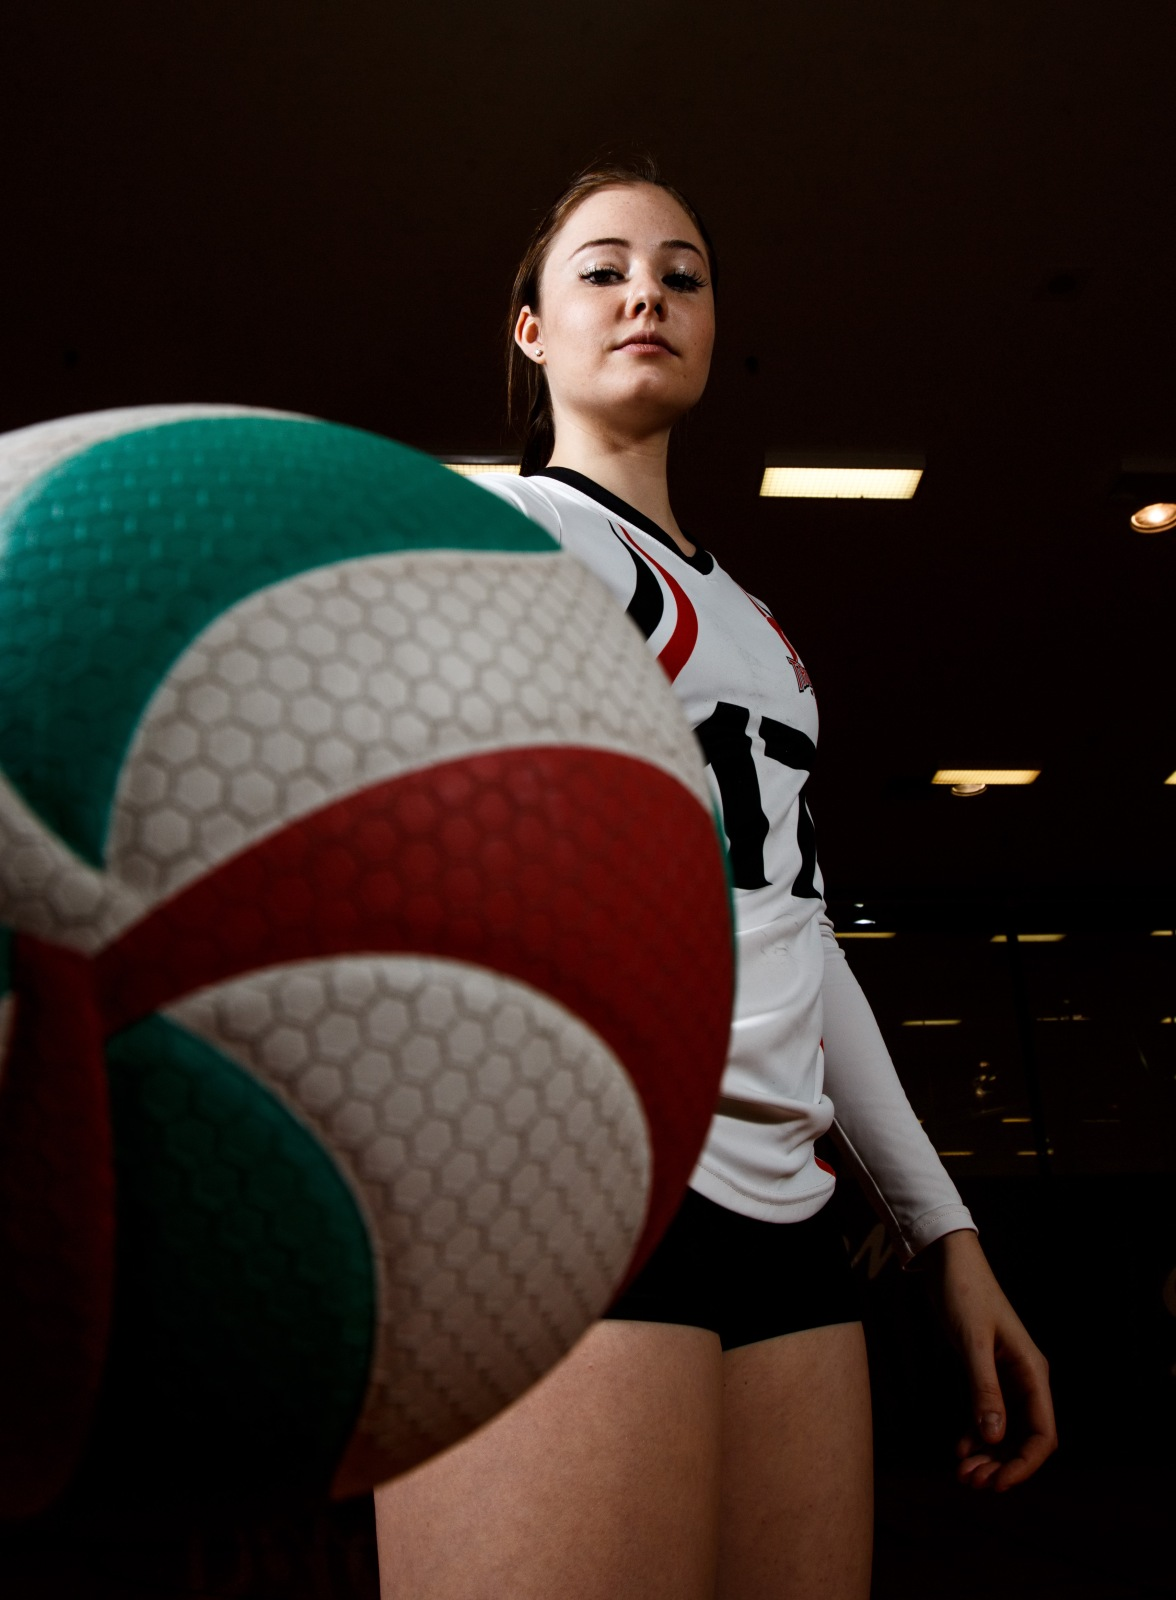 Volleyball stock photography at Campus Centre gym in Calgary on Thursday, April 14, 2016. (Photo by Kyle Meller)